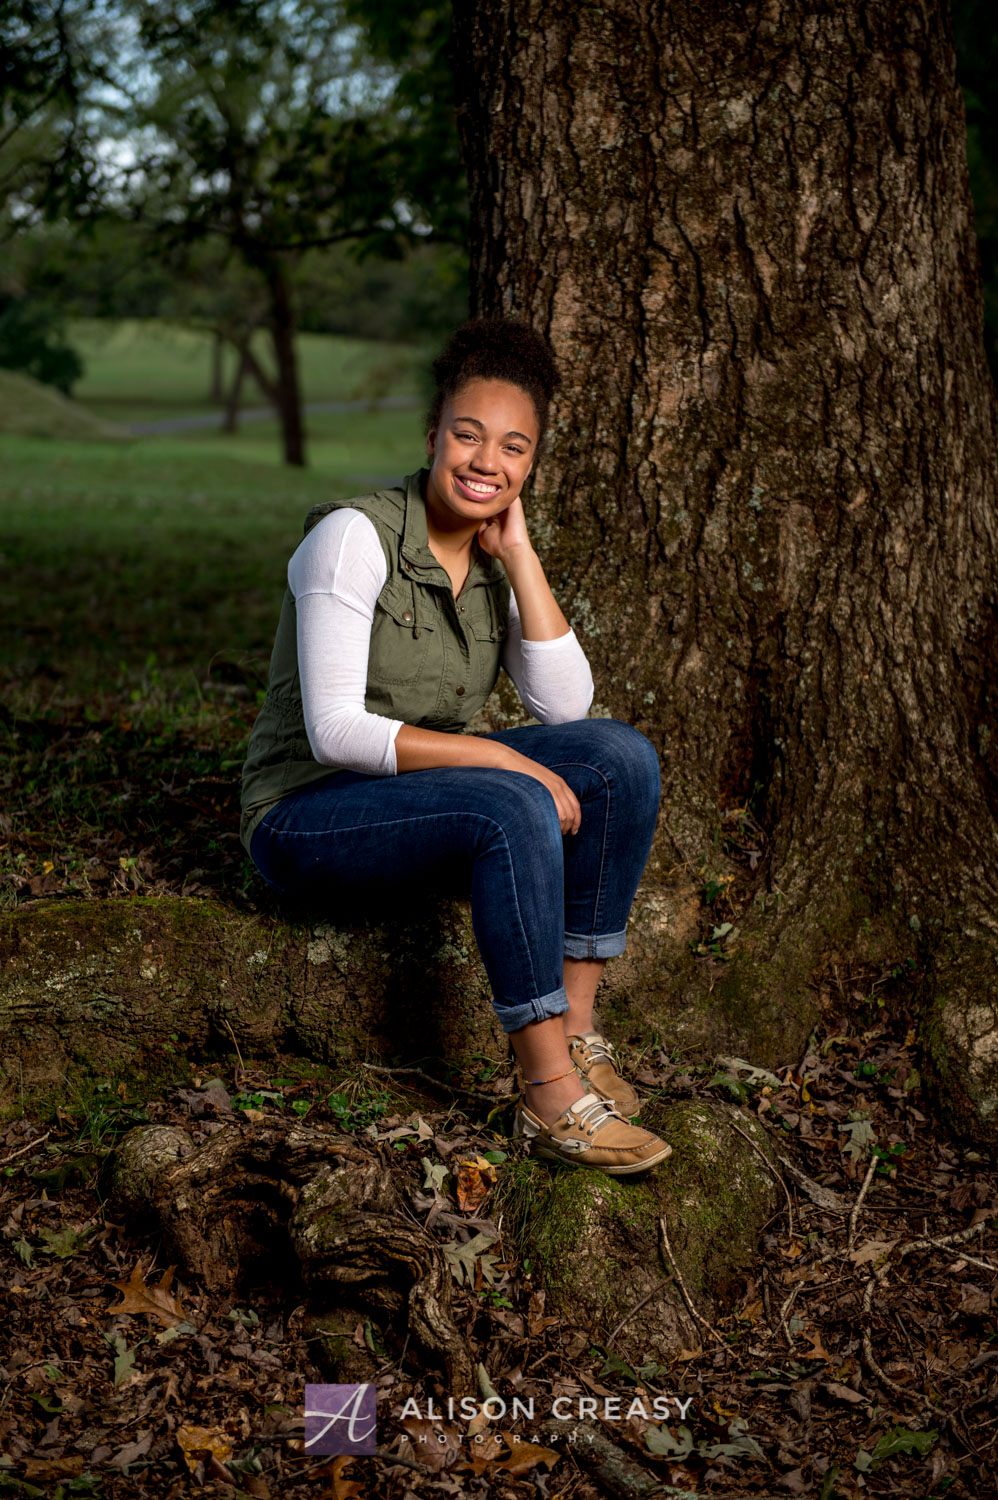 Scenic_outdoor_volleyball_senior_portraits_lynchburg_VA_alison_creasy_photographer--34.jpg